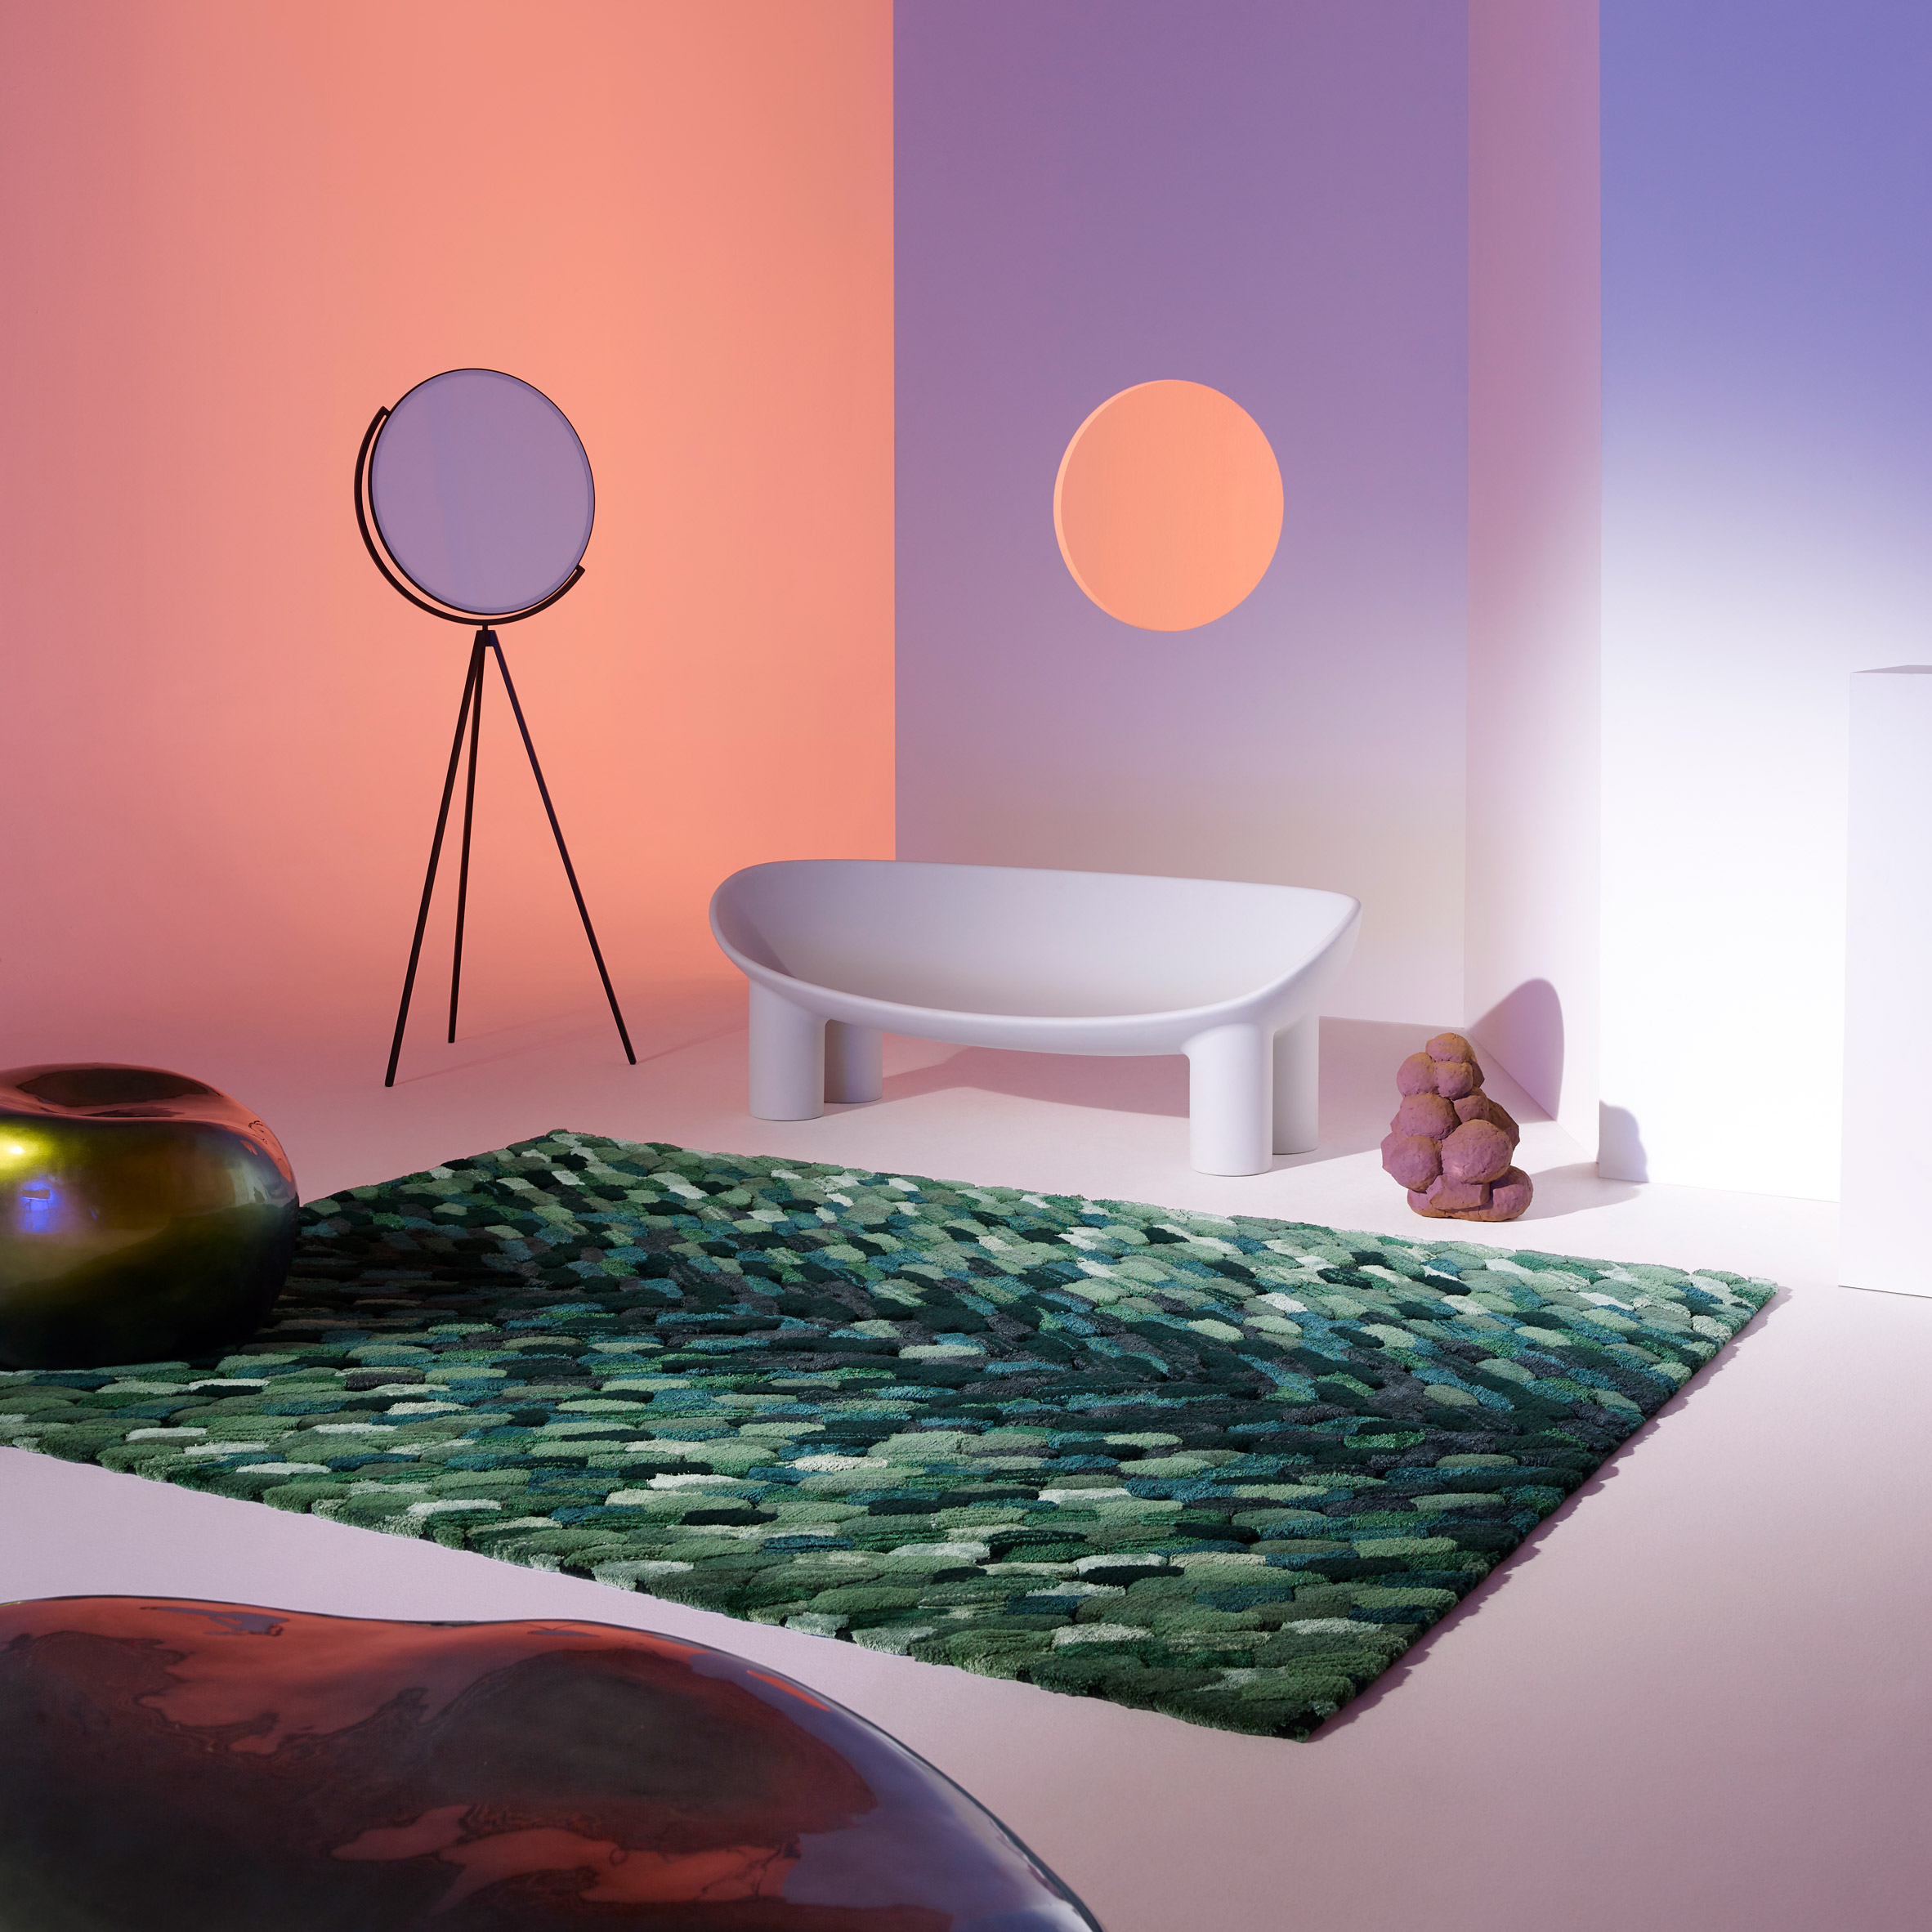 Spectrum Campaign By Cc Tapis Shows Rugs Against Kaleidoscopic Set